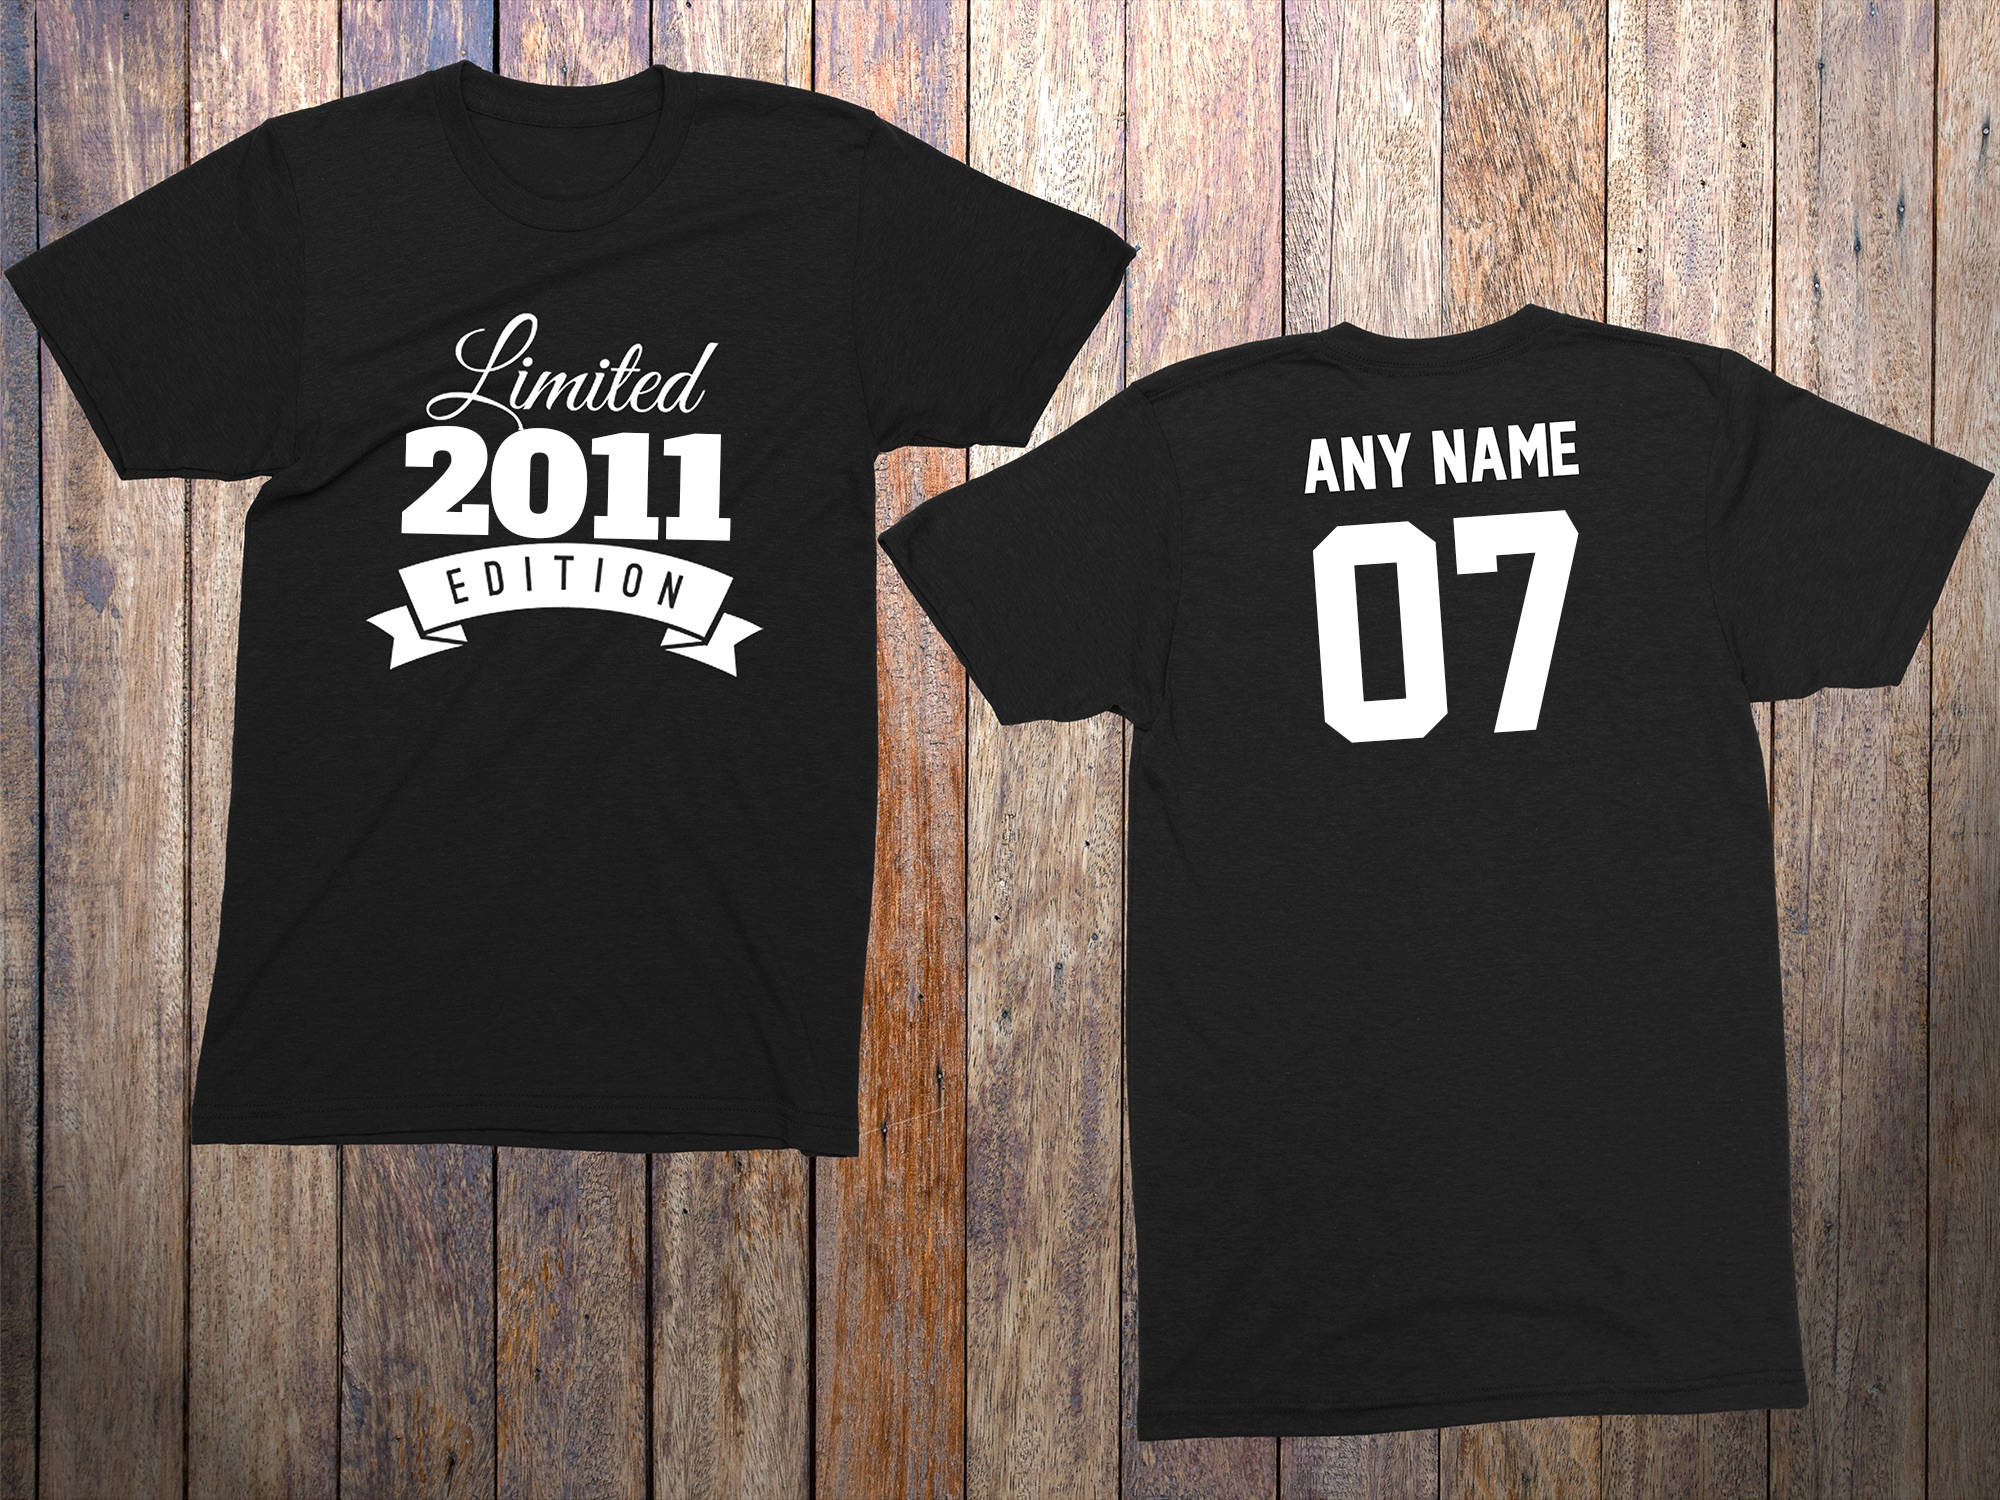 7 Year Old Birthday Shirt Or Hoodie 2011 Kids Limited Edition 7th Party Years Youth Celebration